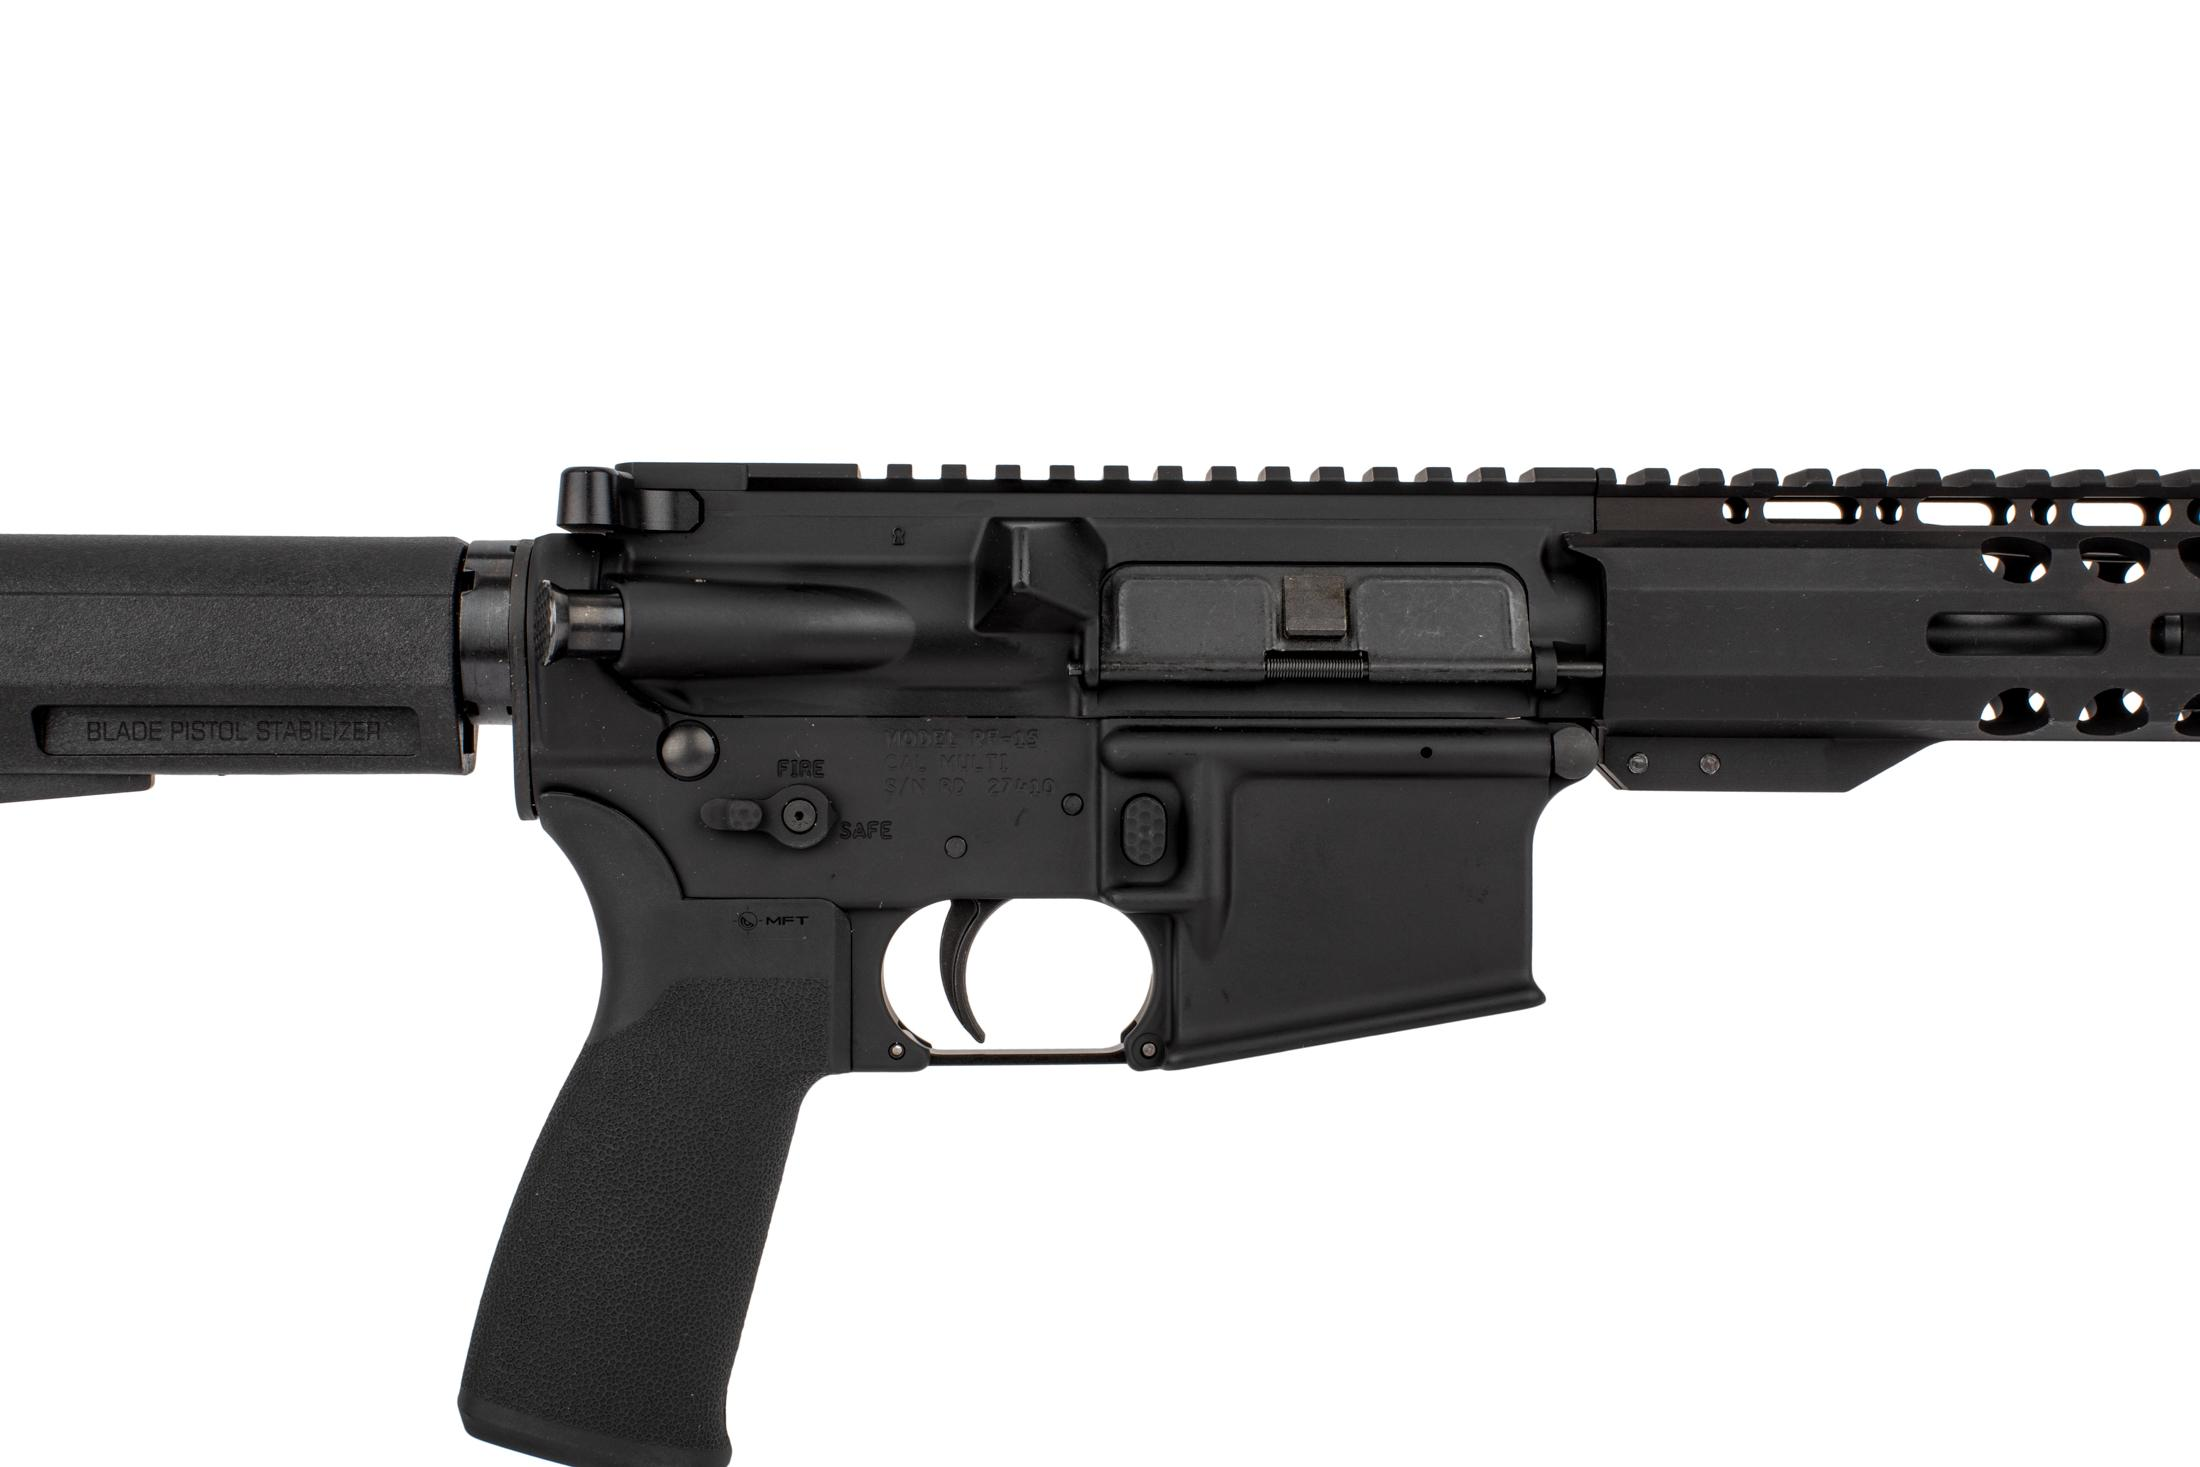 Radical Firearms 7.5 AR 15 pistol with PA exclusive M-LOK rail and Shockwave 2M brace has MFT pistol grip and ambi safety selector